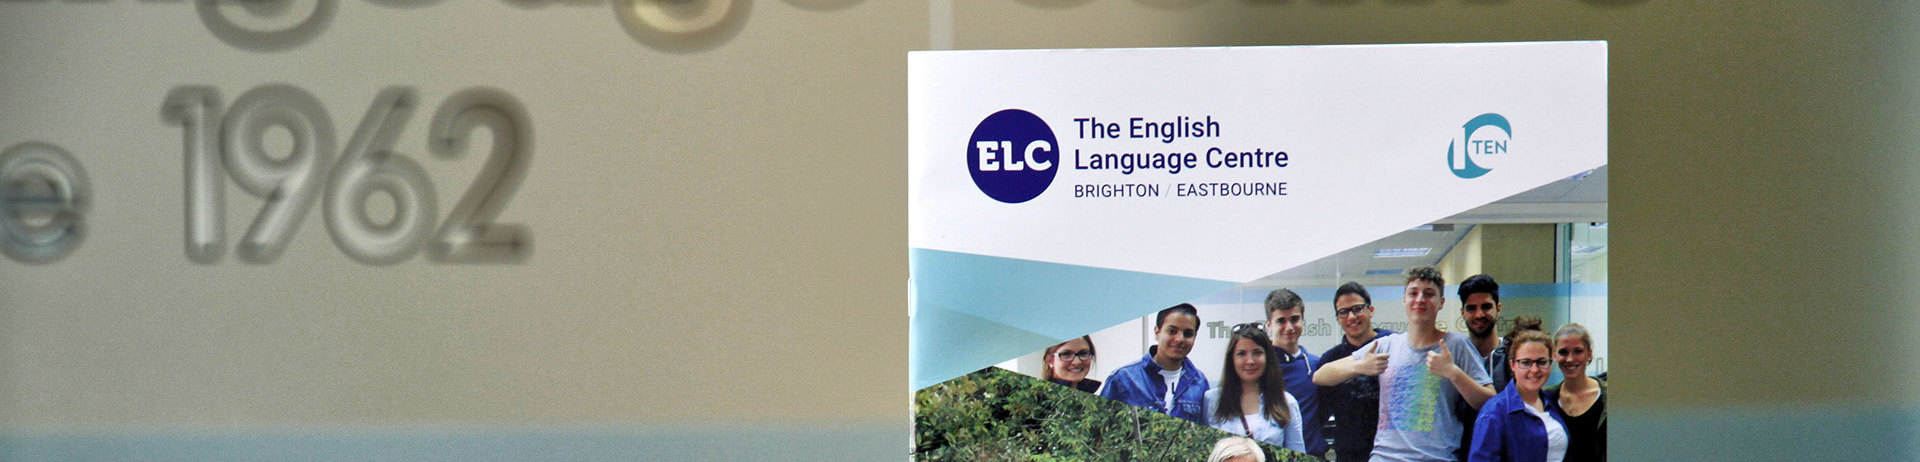 About ELC in Brighton and Eastbourne